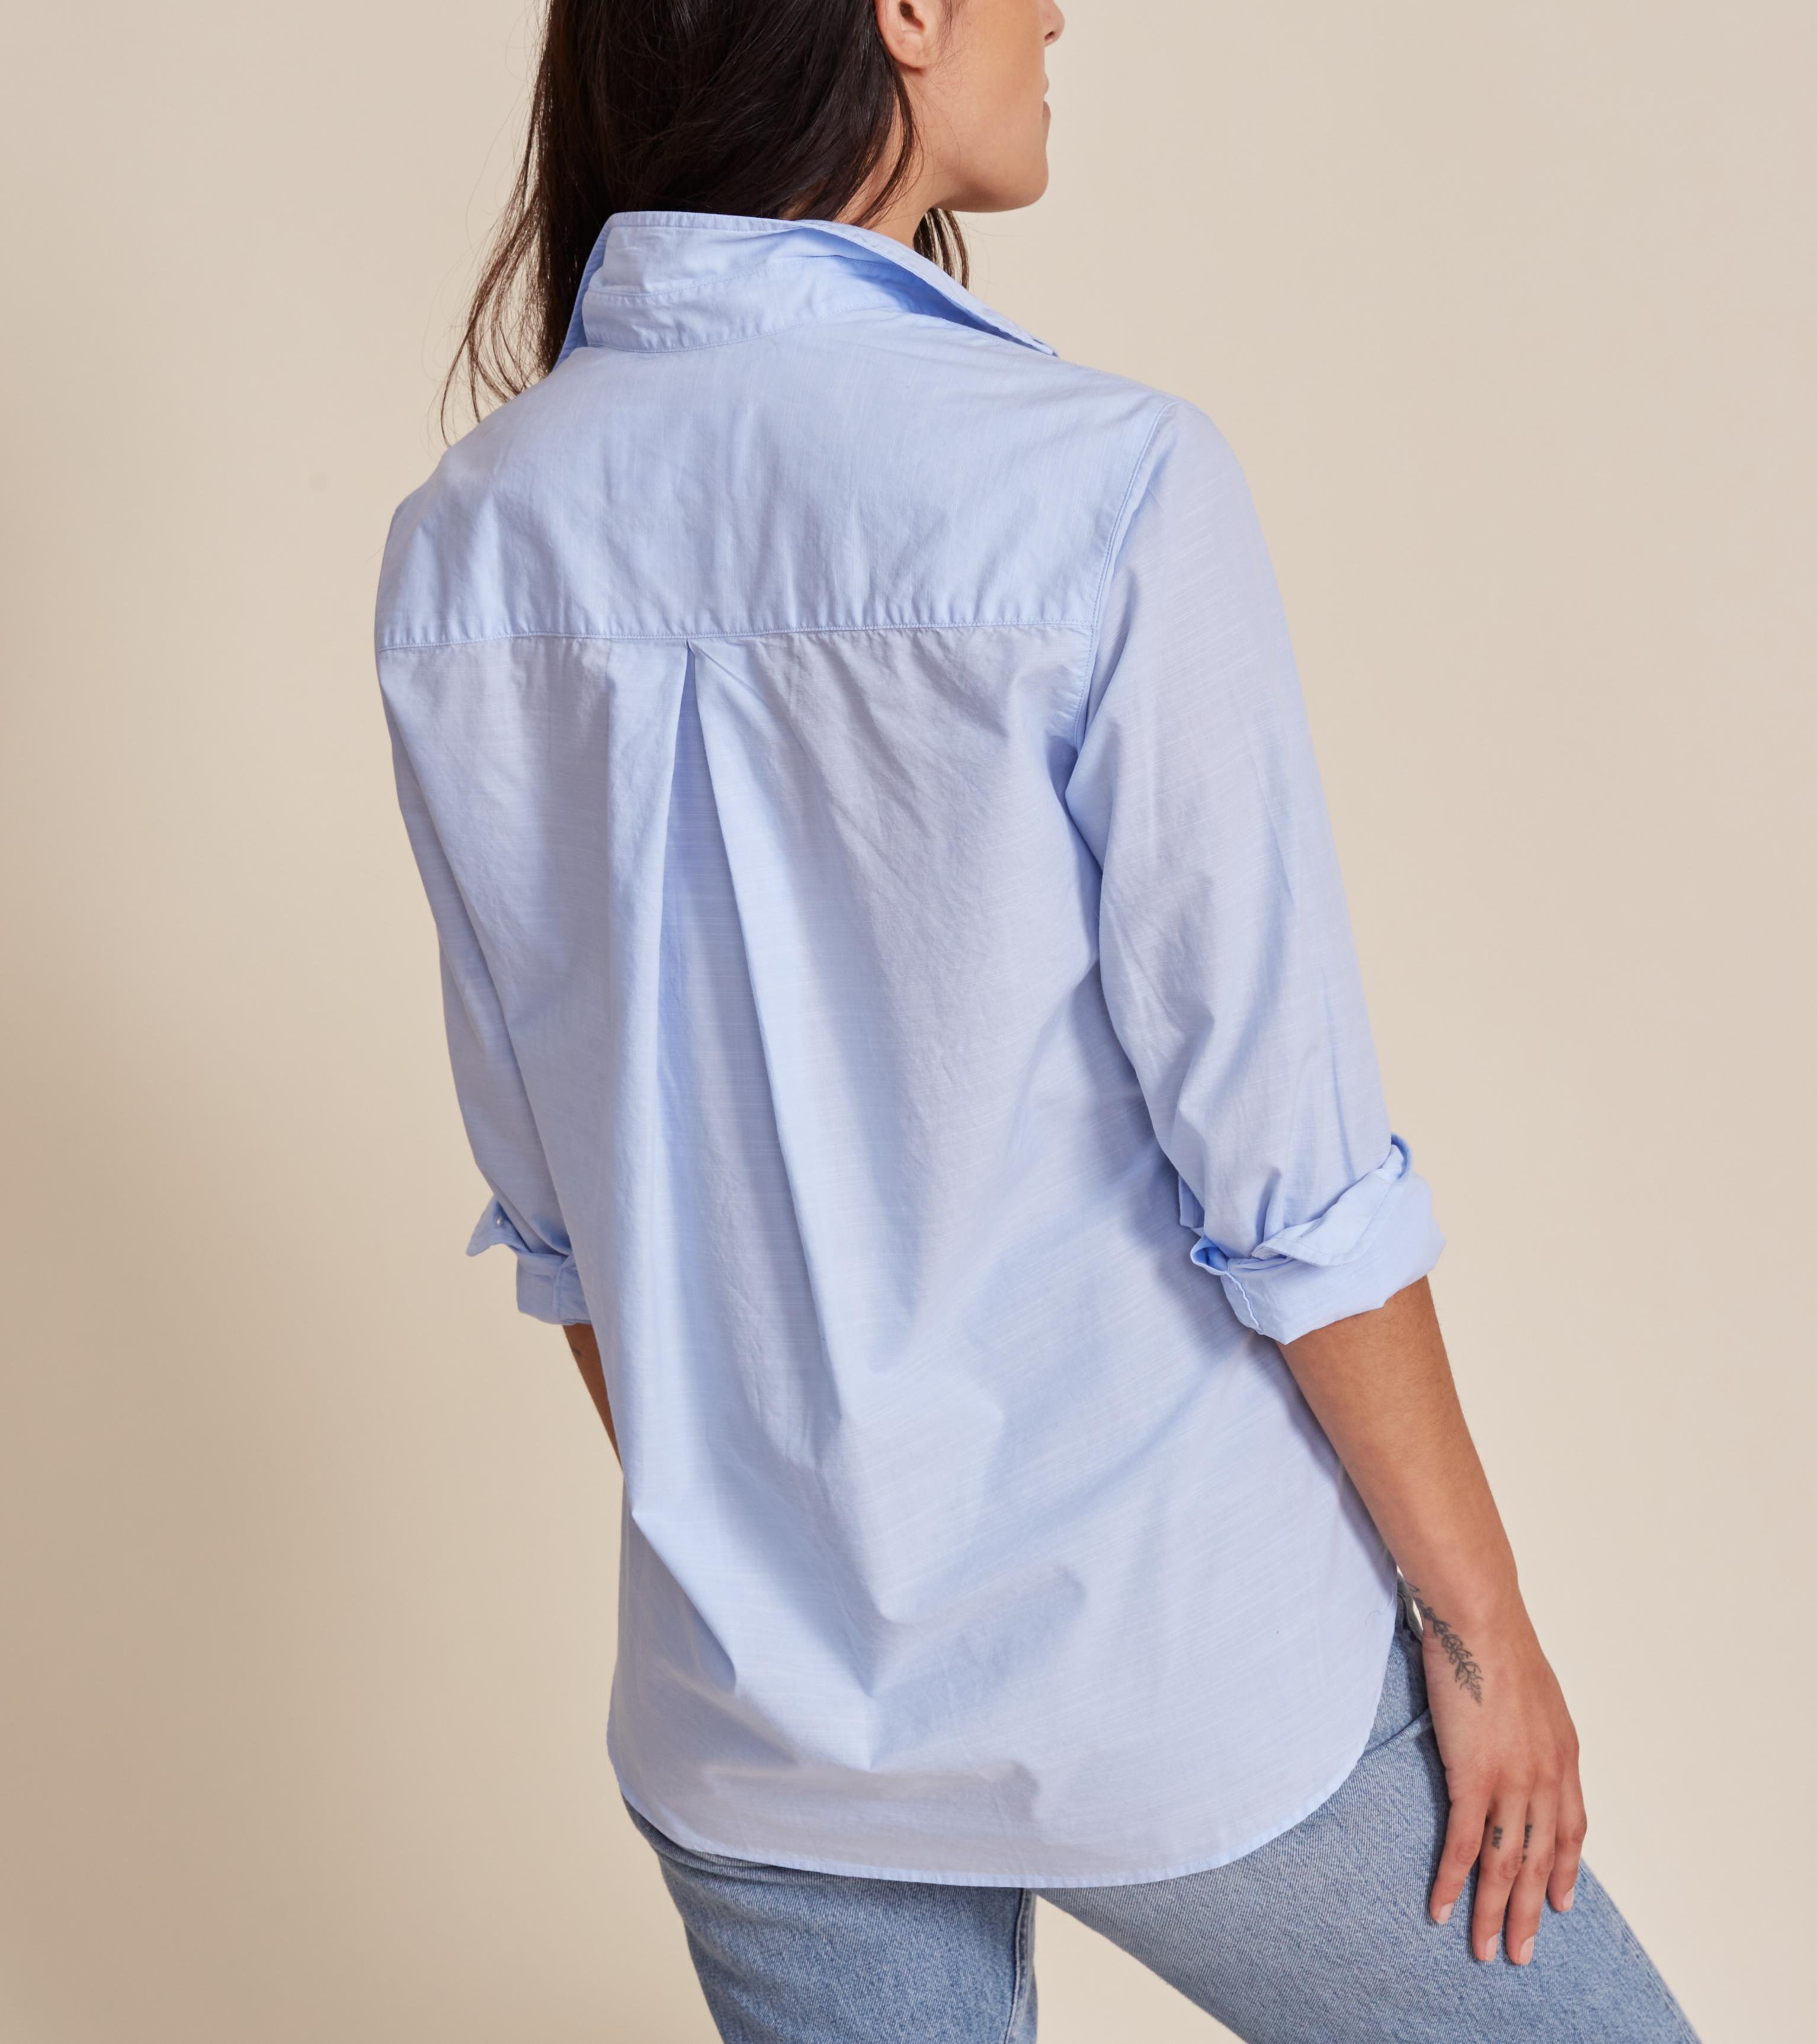 The Hero French Blue, Washed Cotton 1